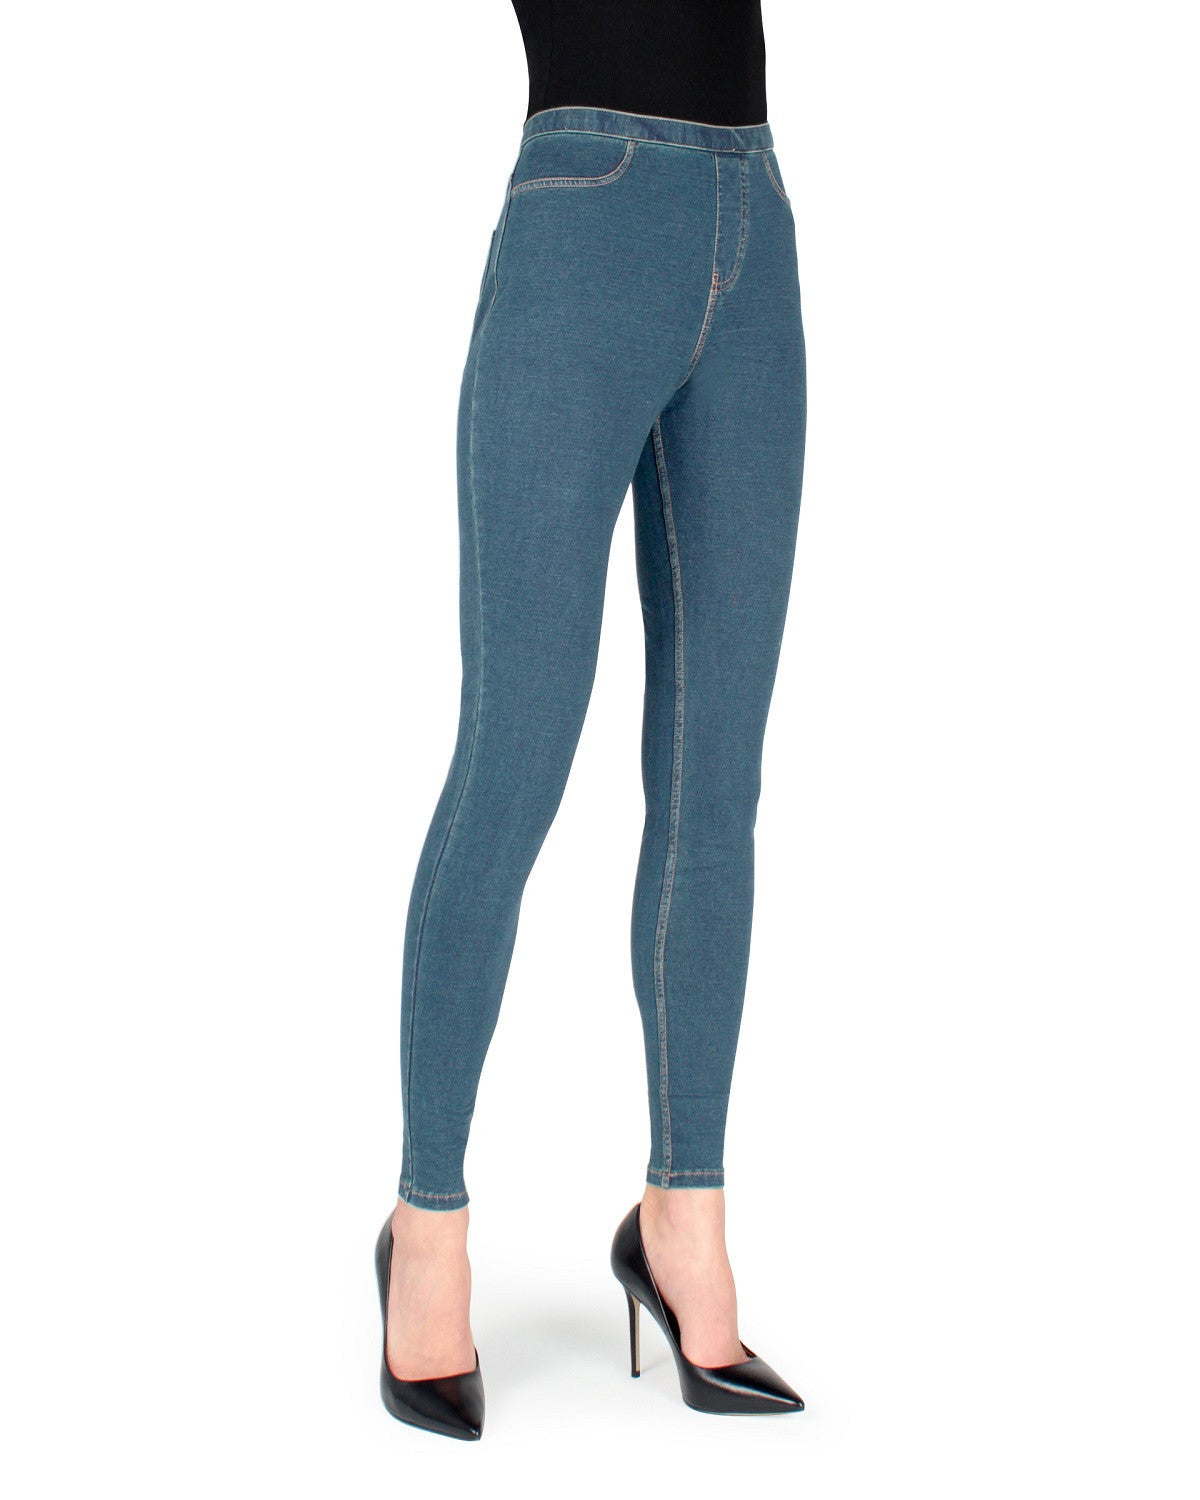 Alta Denim Leggings by MeMoi - Light Wash - Front View -MQ-005 Light Wash-